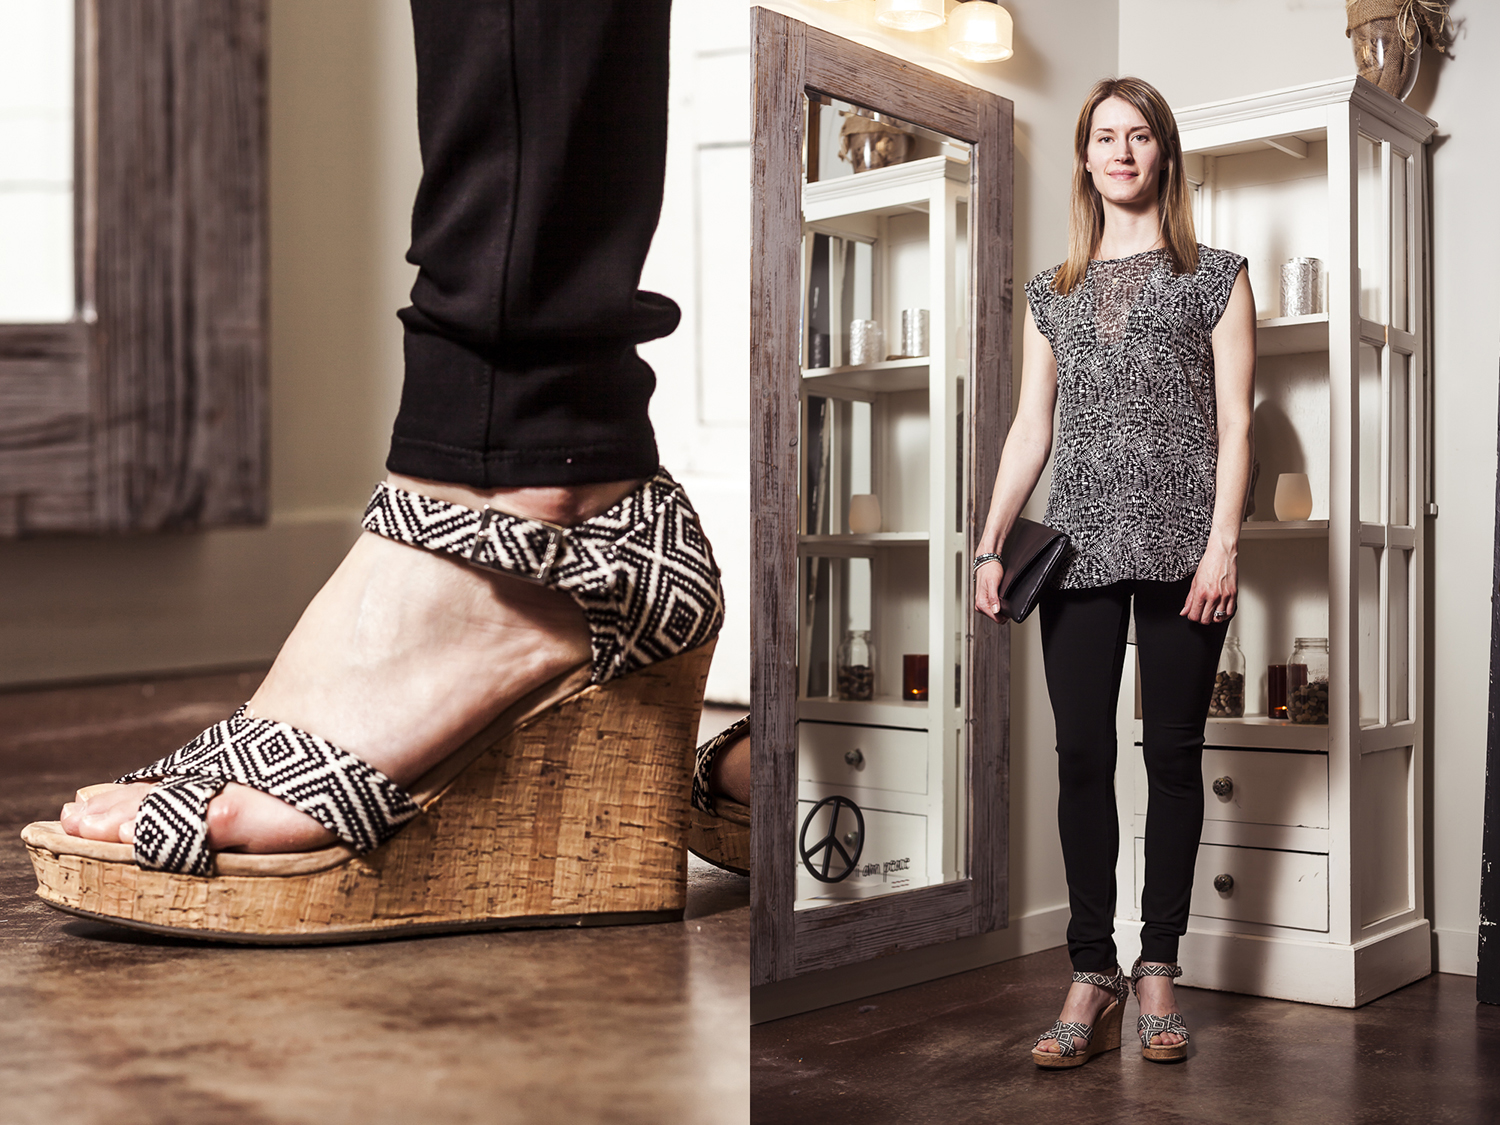 Bella-maas-womens-clothing-store-edmonton-rebecca-taylor-toms-sandals